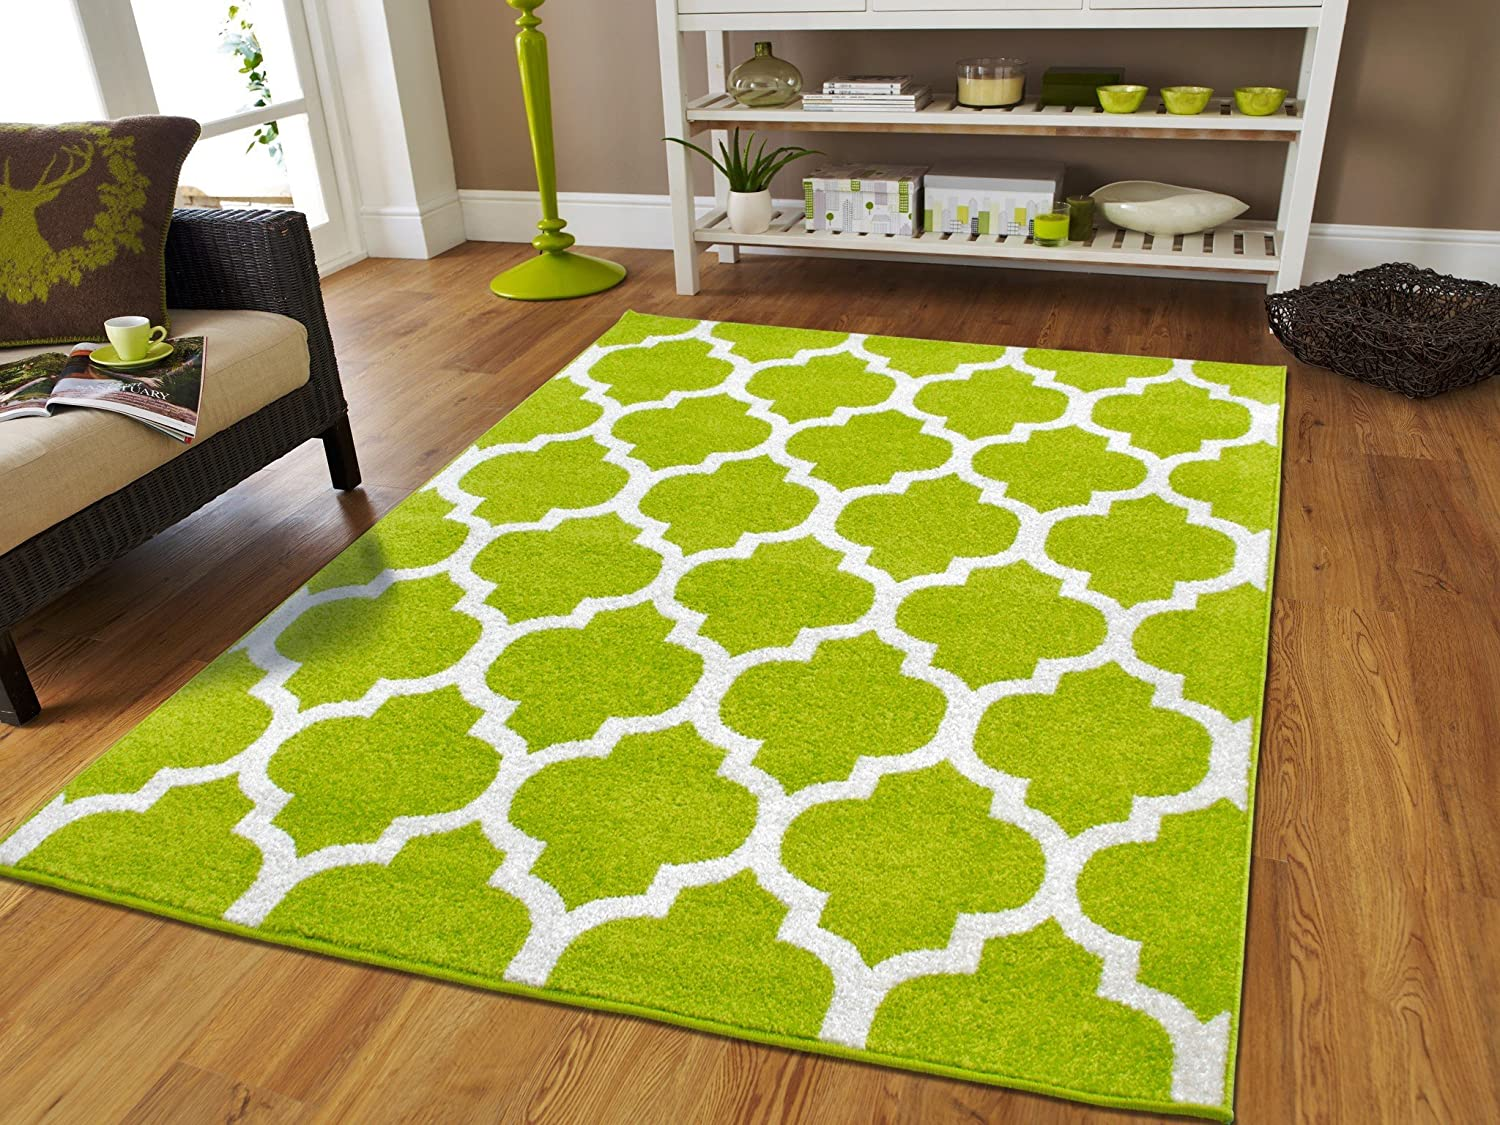 New Fashion Luxury Morrocan Trellis Rugs Green And White With Lines For Dining Room 8x10 Soft Bedrooms Large Living Cheap